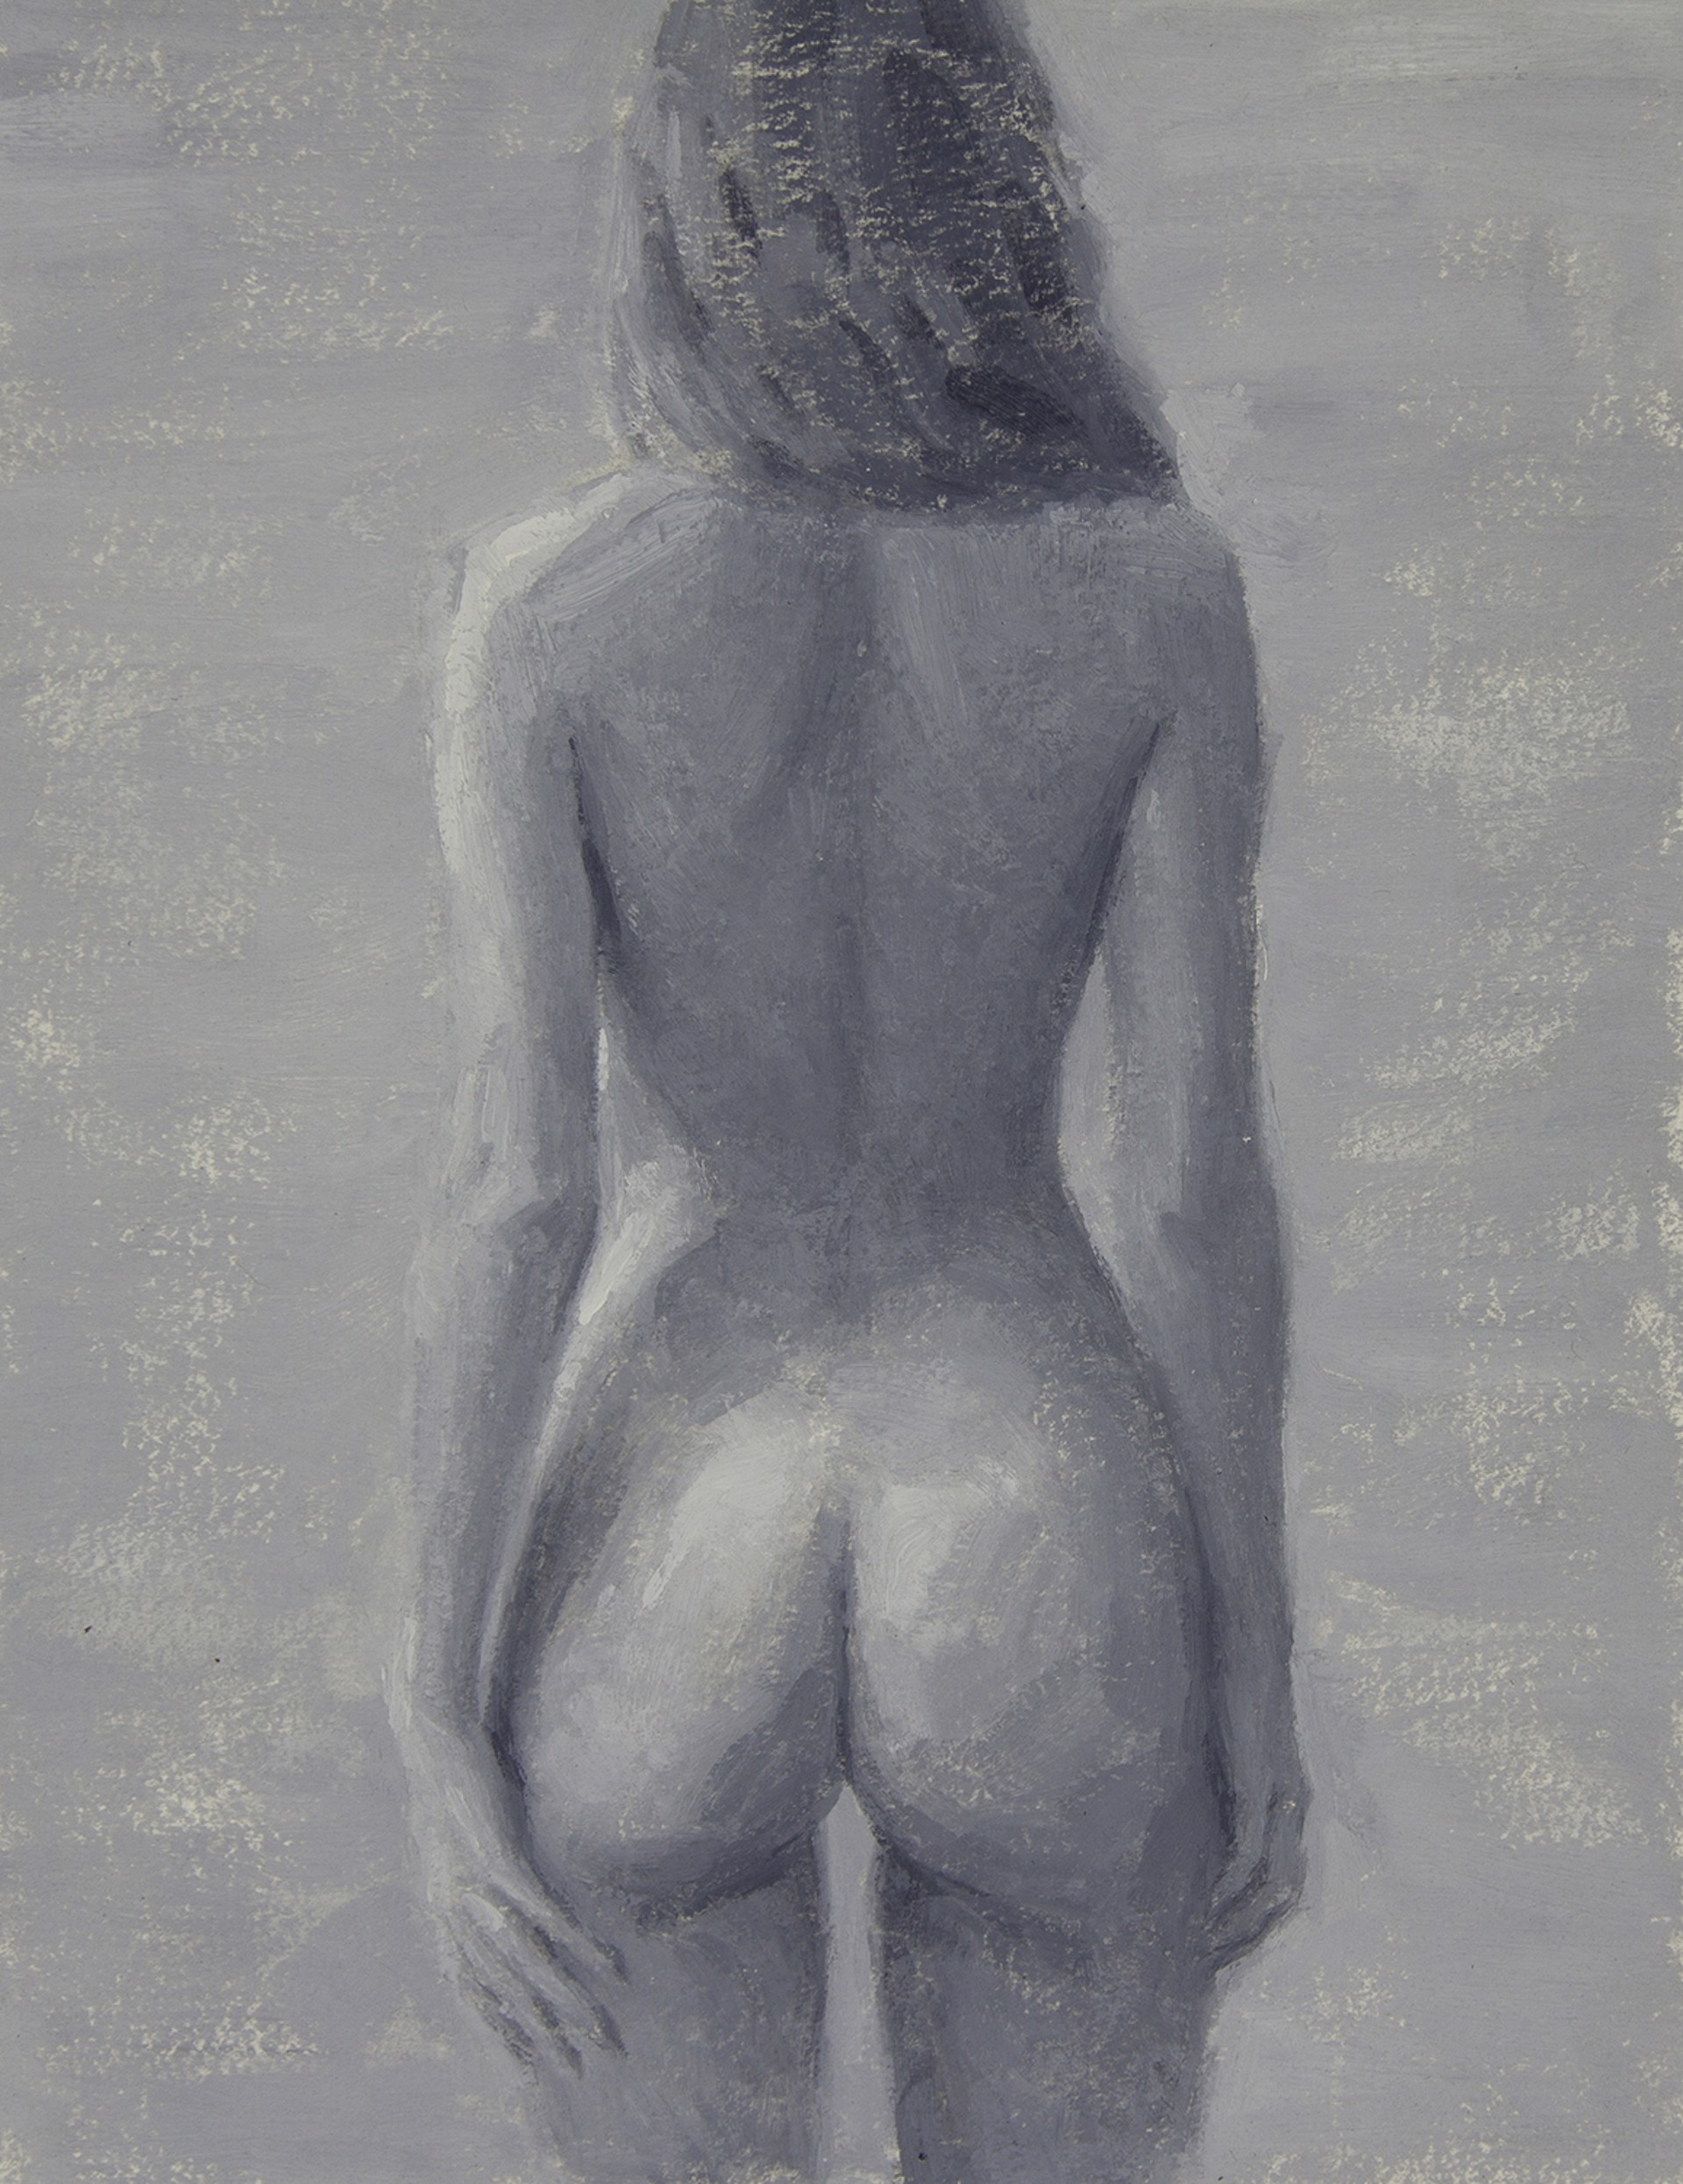 Back View 9 by Mark Bradley Schwartz